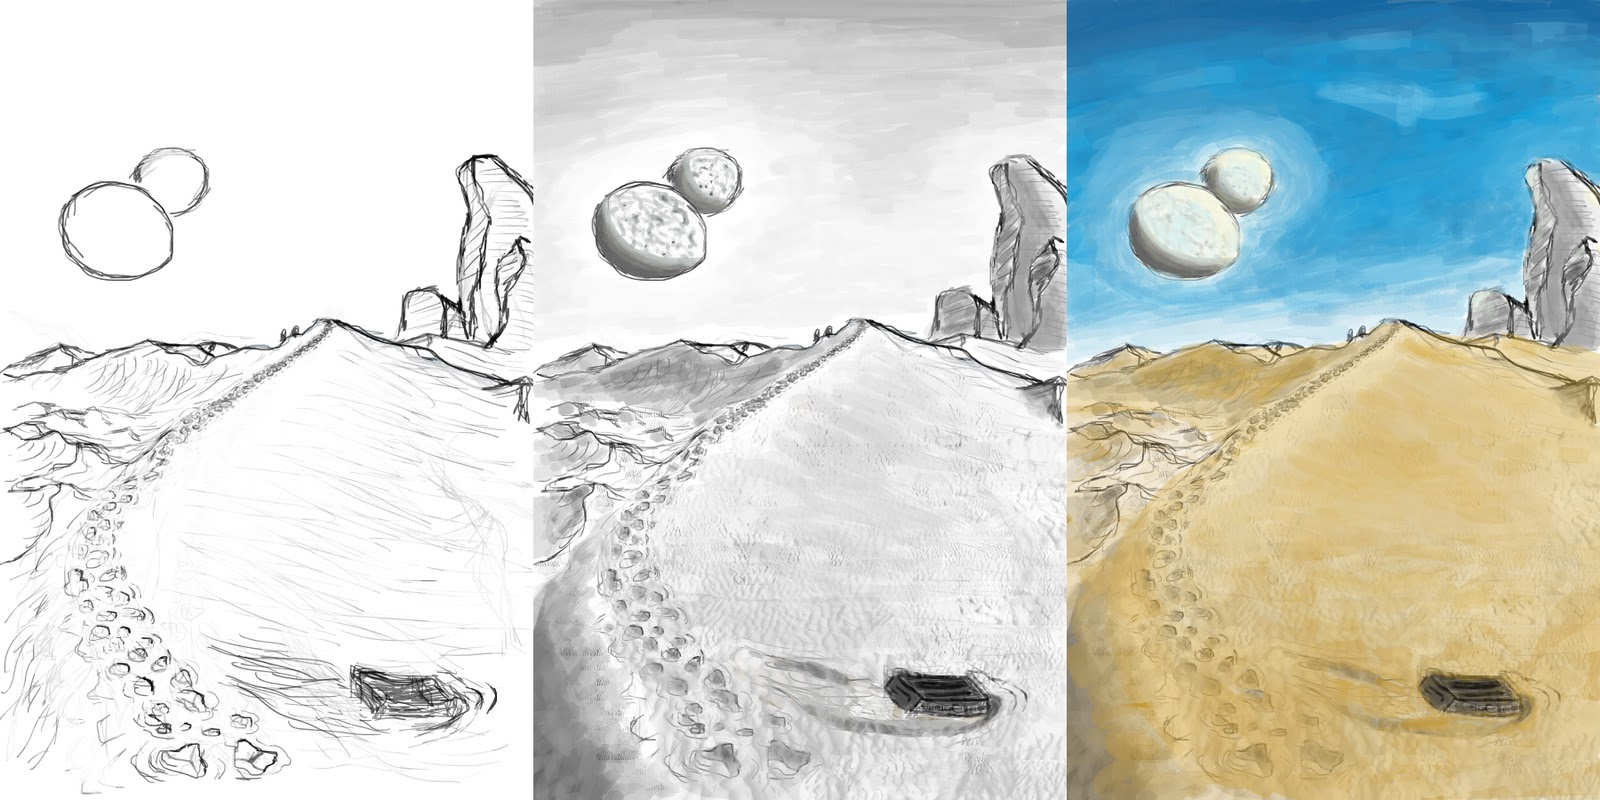 Book Cover Illustration Assignment : Todd allison illustration assignment dune